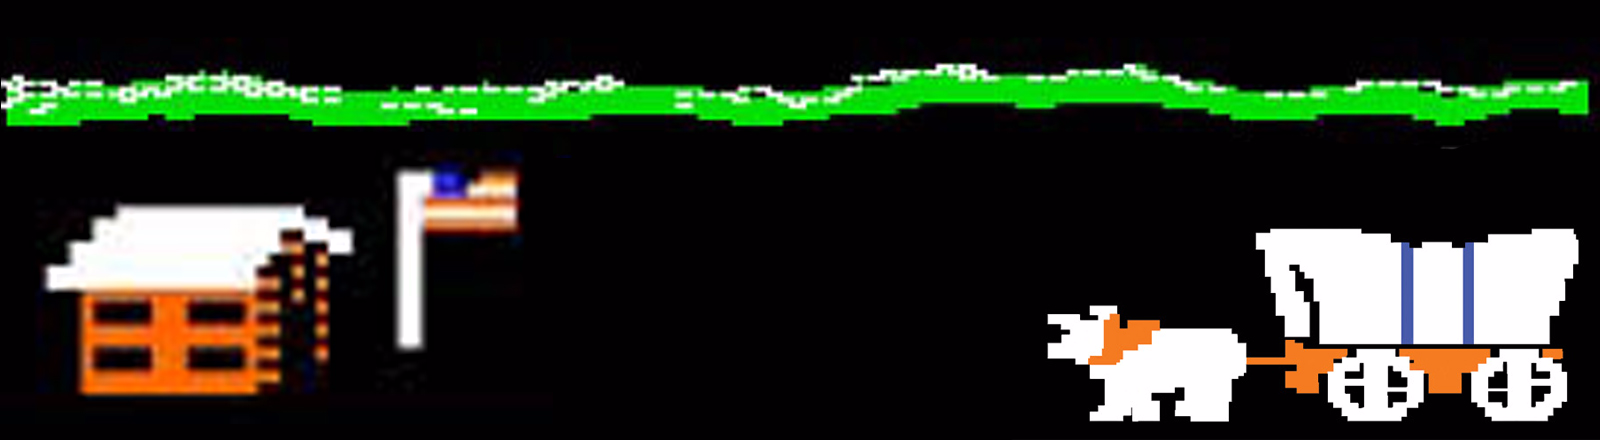 Rectangular header shot of Oregon Trail video game image of oxen team pulling covered wagon approaching a fort flying US flag